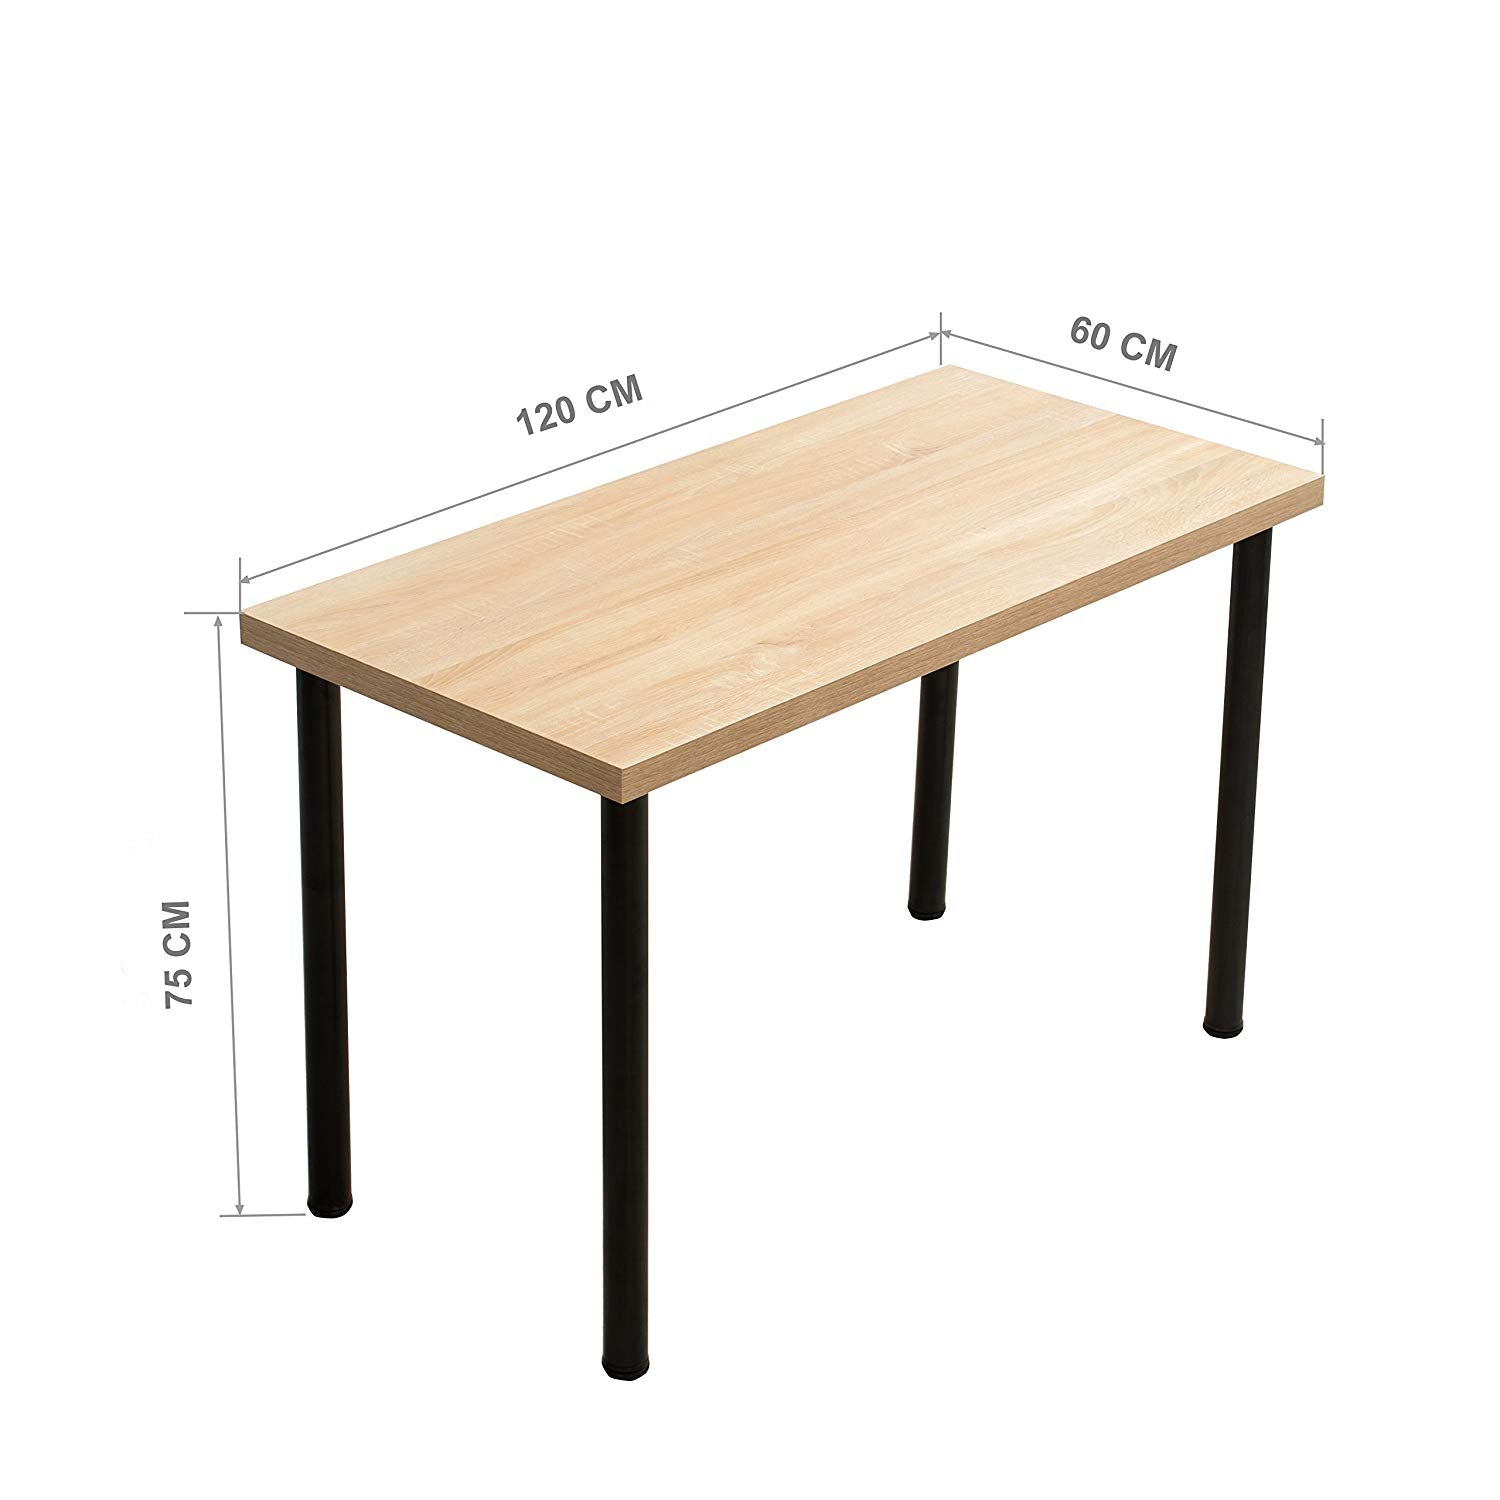 Incredible Simple Design Table Computer Desk 120 X 60 Cm Natural Download Free Architecture Designs Pushbritishbridgeorg